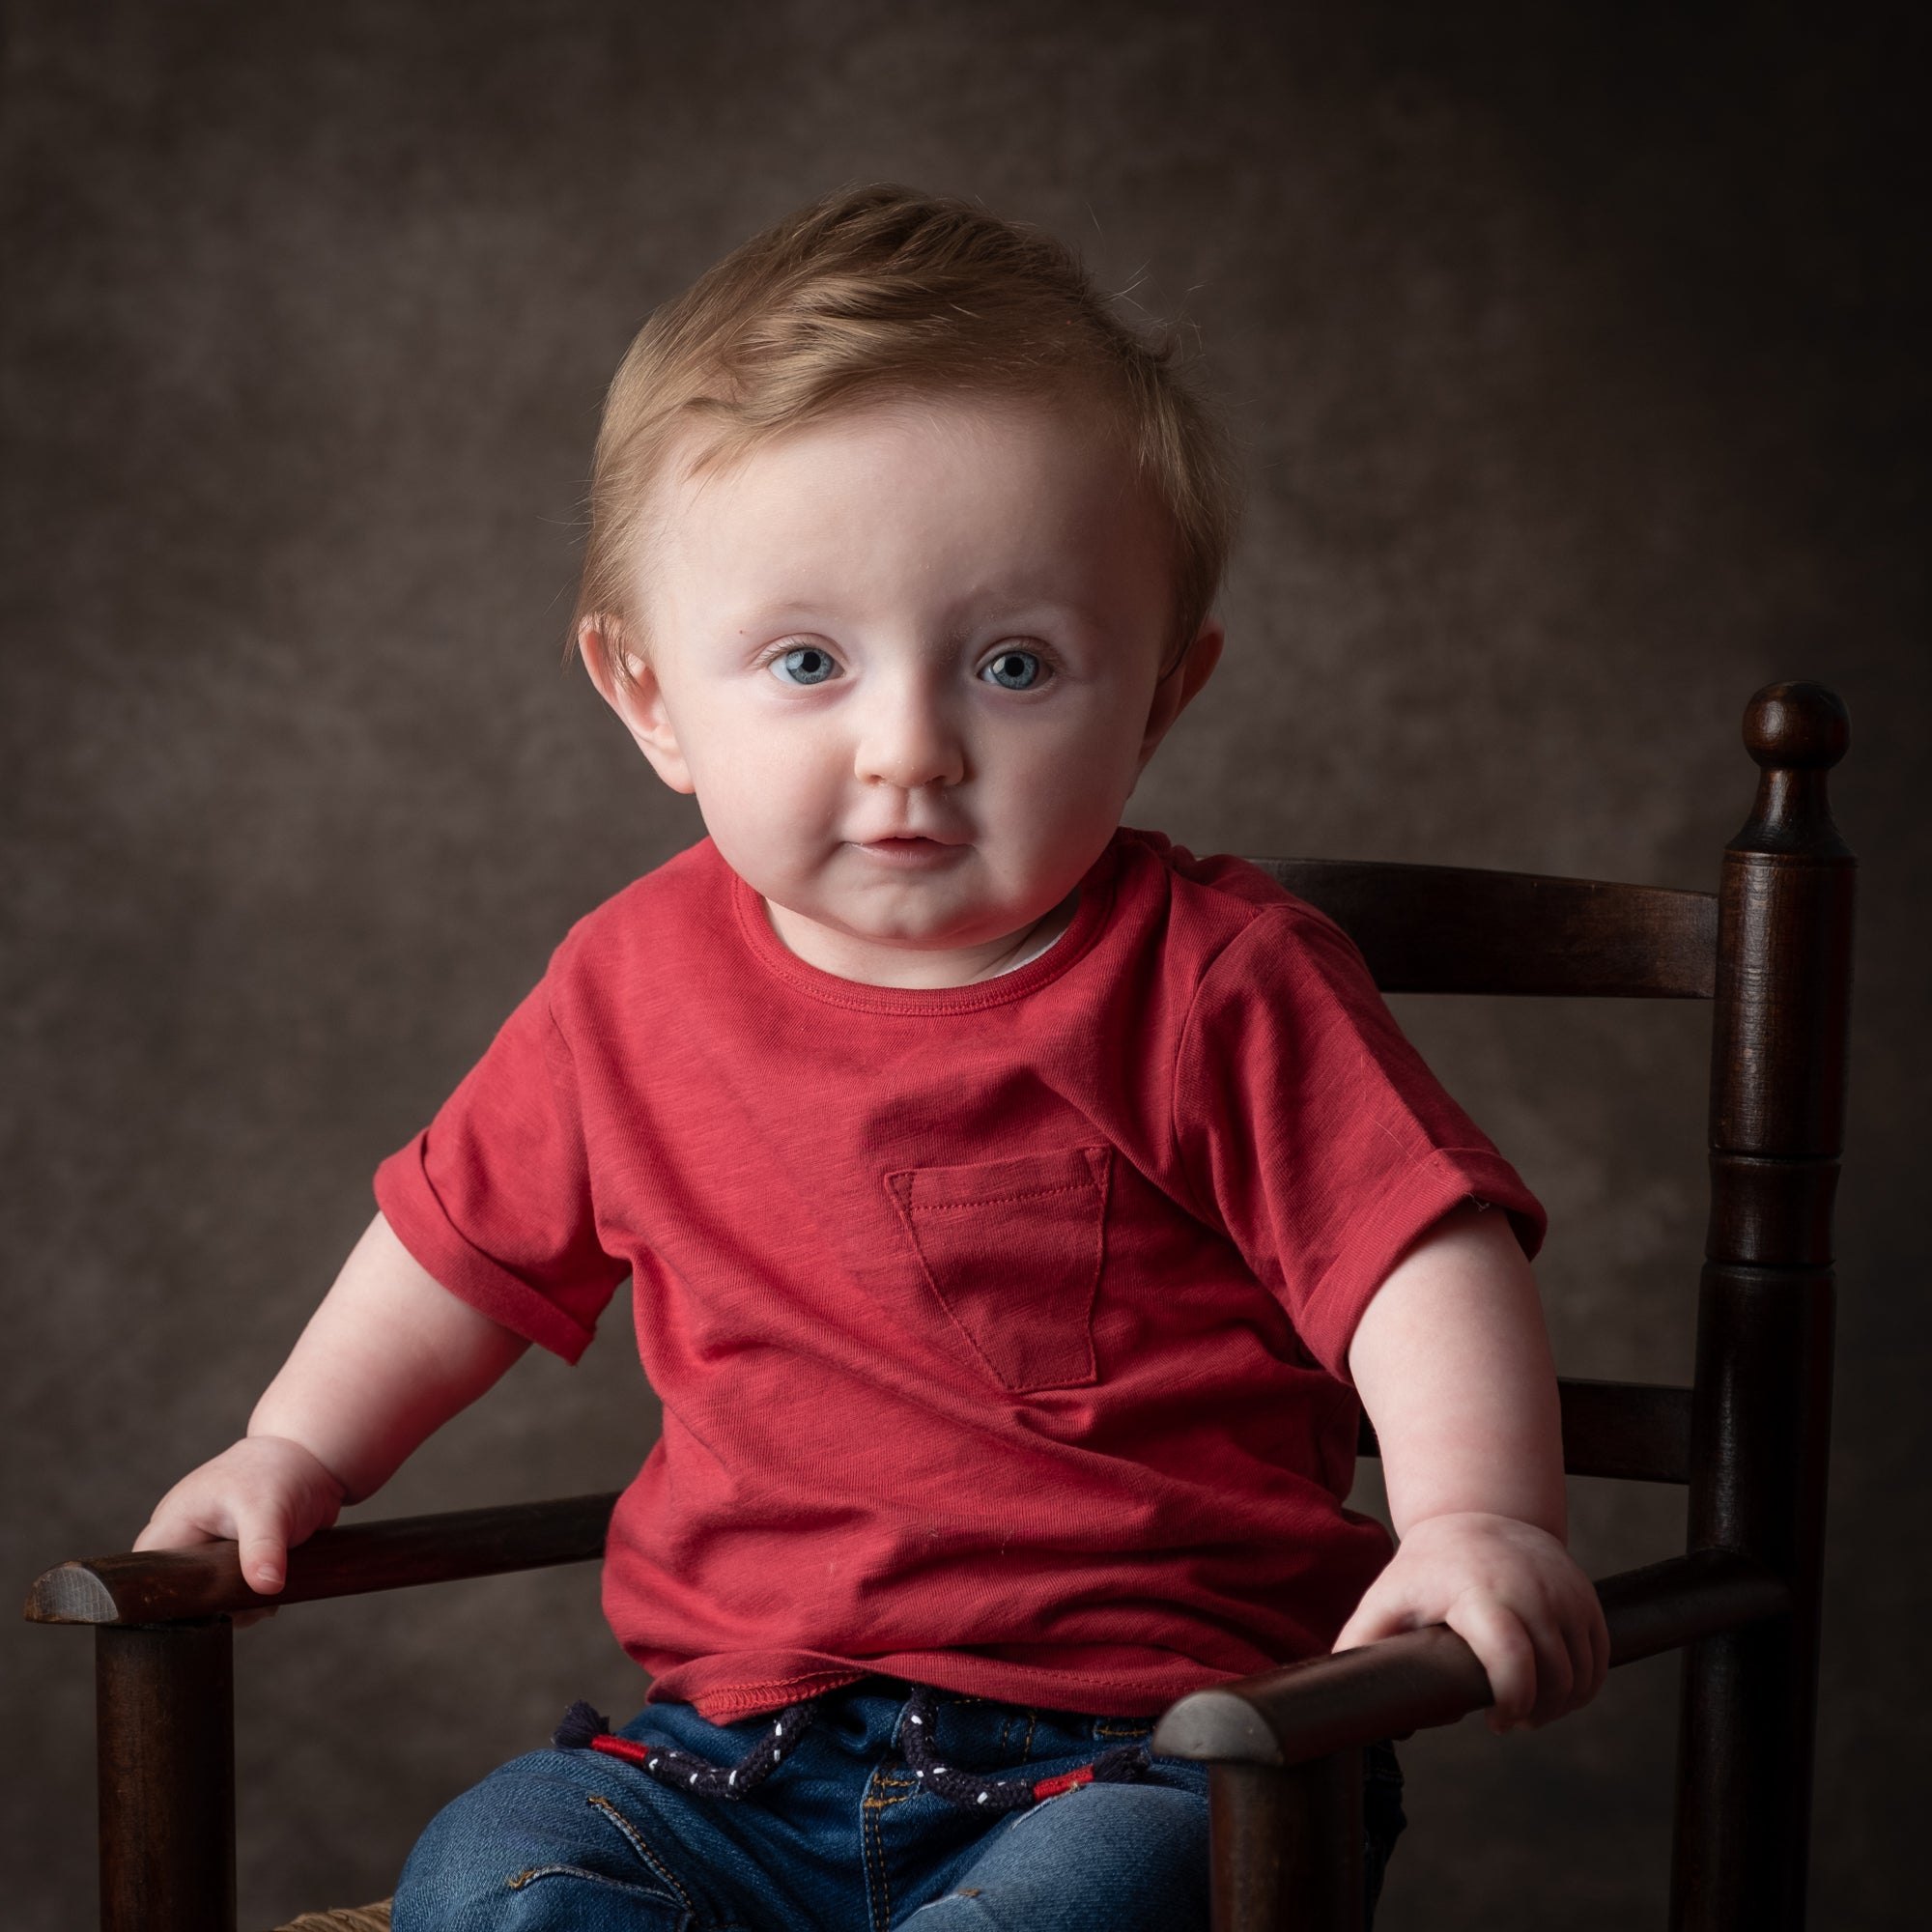 Redheaded_toddler_in_red_T-shirt_and_jeans_sat_in_miniature_armchair.jpg